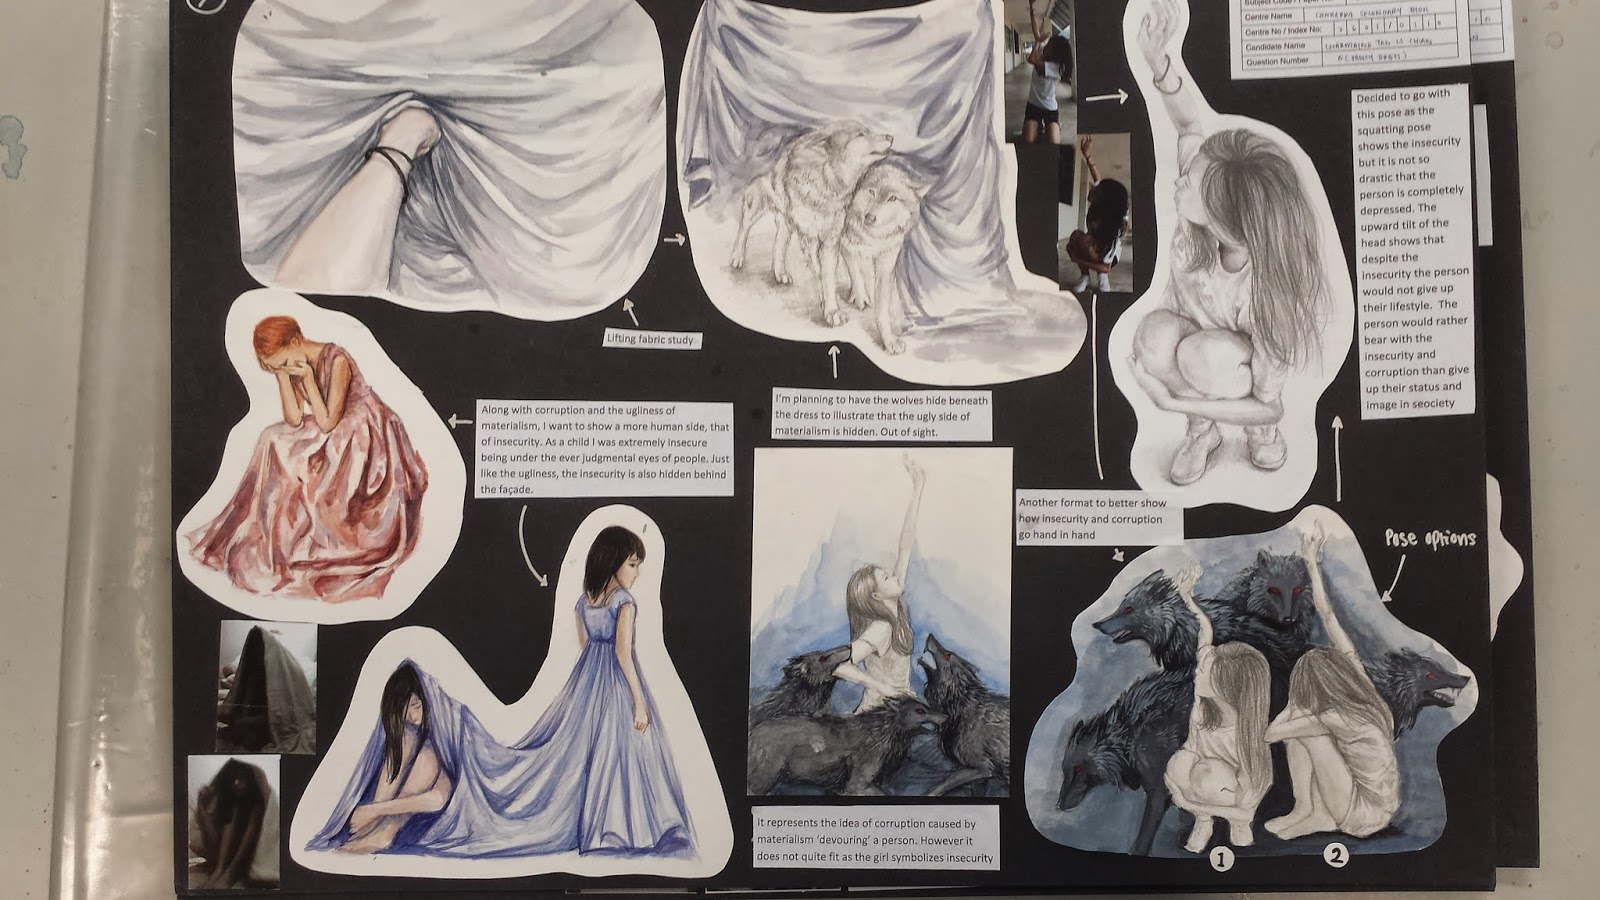 coursework in arts essay The art history ap course is designed to allow students to examine major forms of artistic expression relevant to a variety of cultures evident in wide variety of periods from present times into the past.